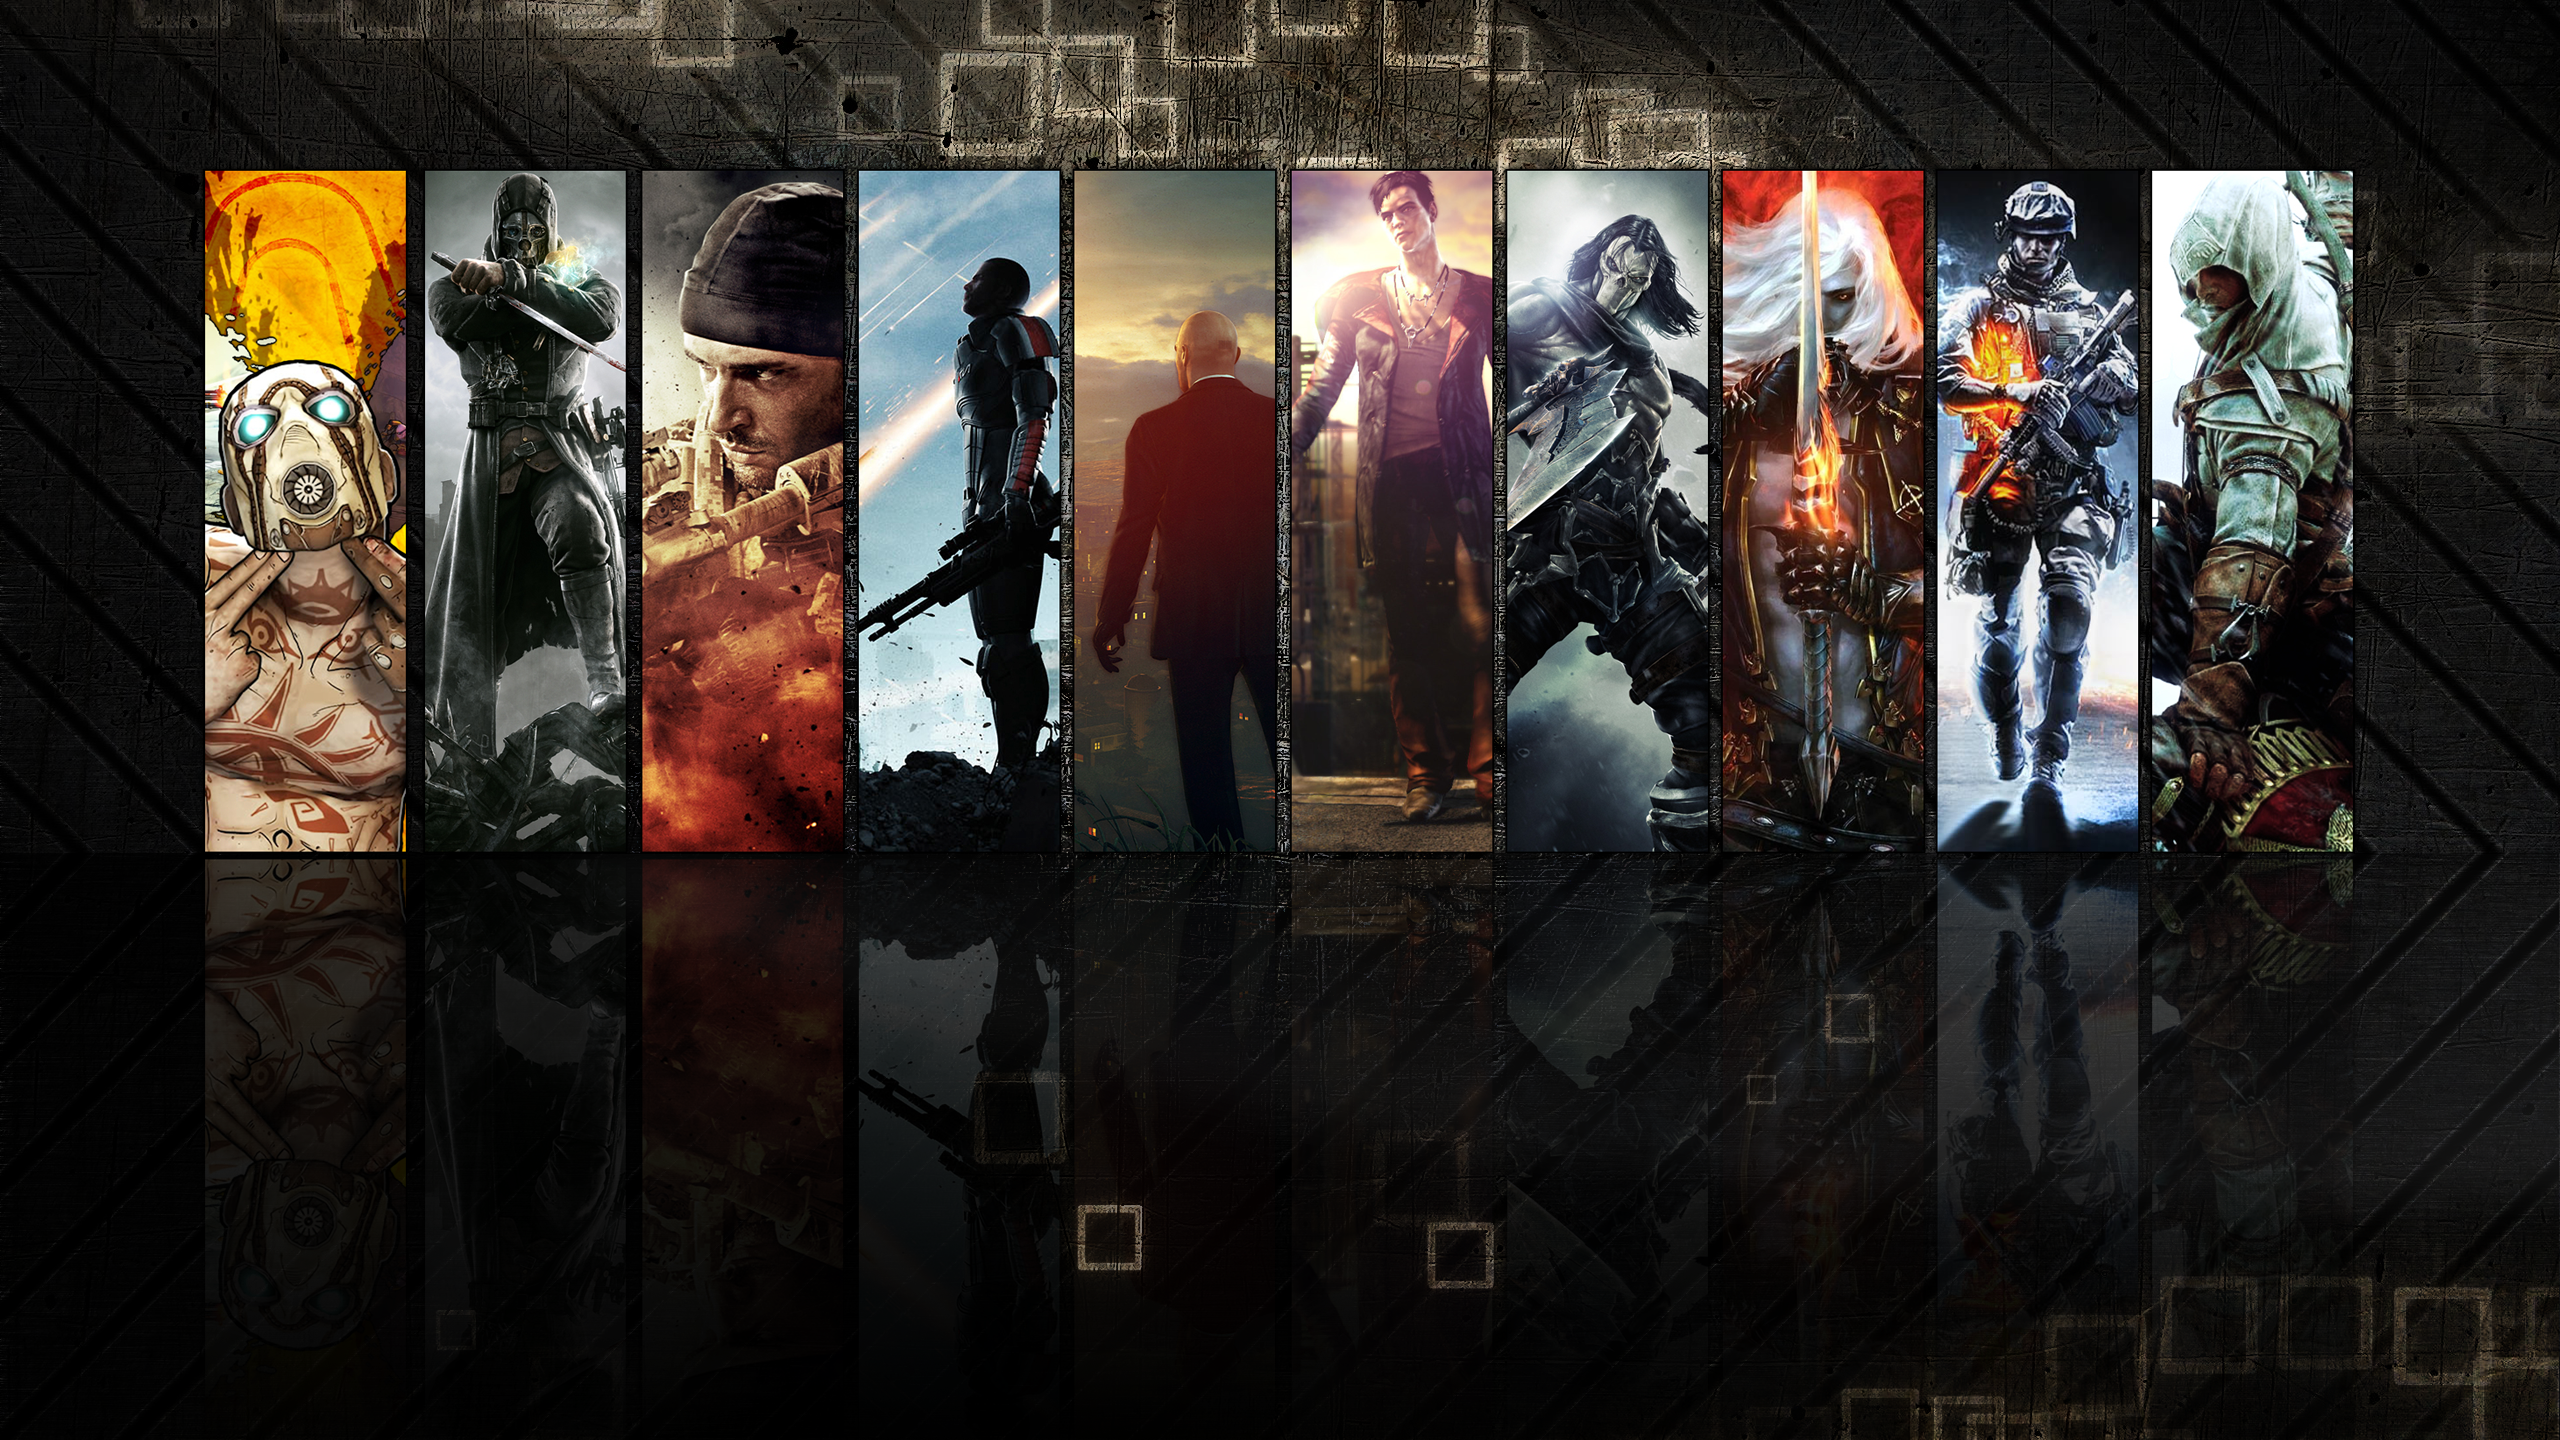 Video Games Wallpaper Top HD Video Games Backgrounds XD 2560x1440